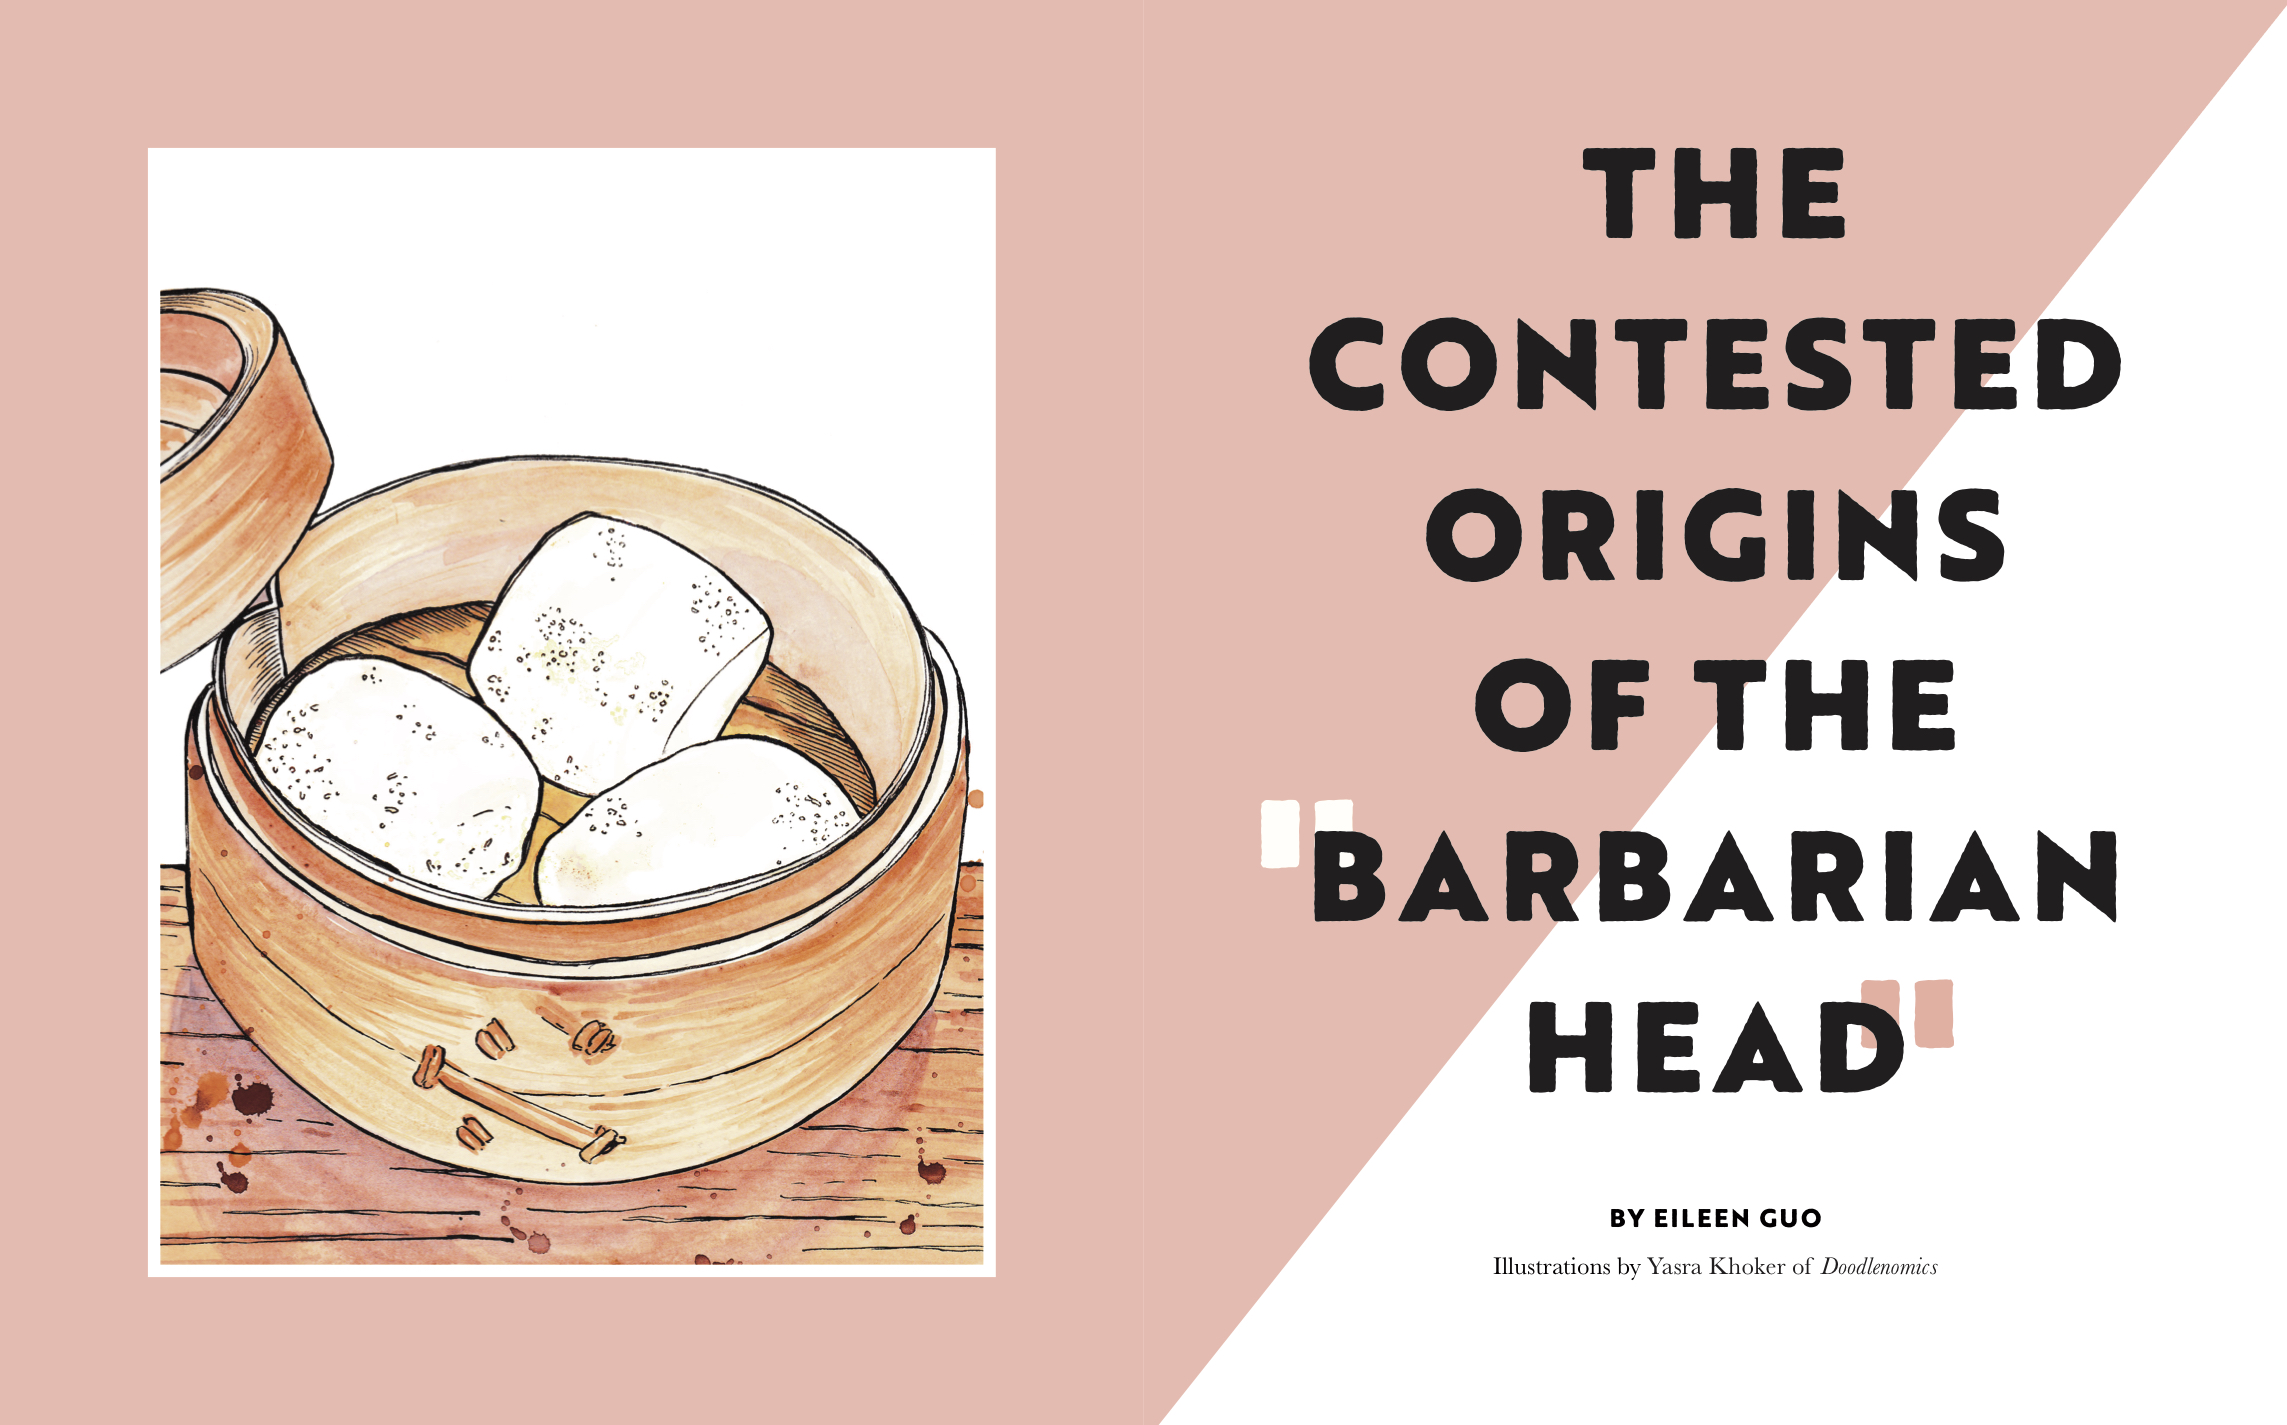 Eileen Guo - The Contested Origins of the Barbarian Head.jpg